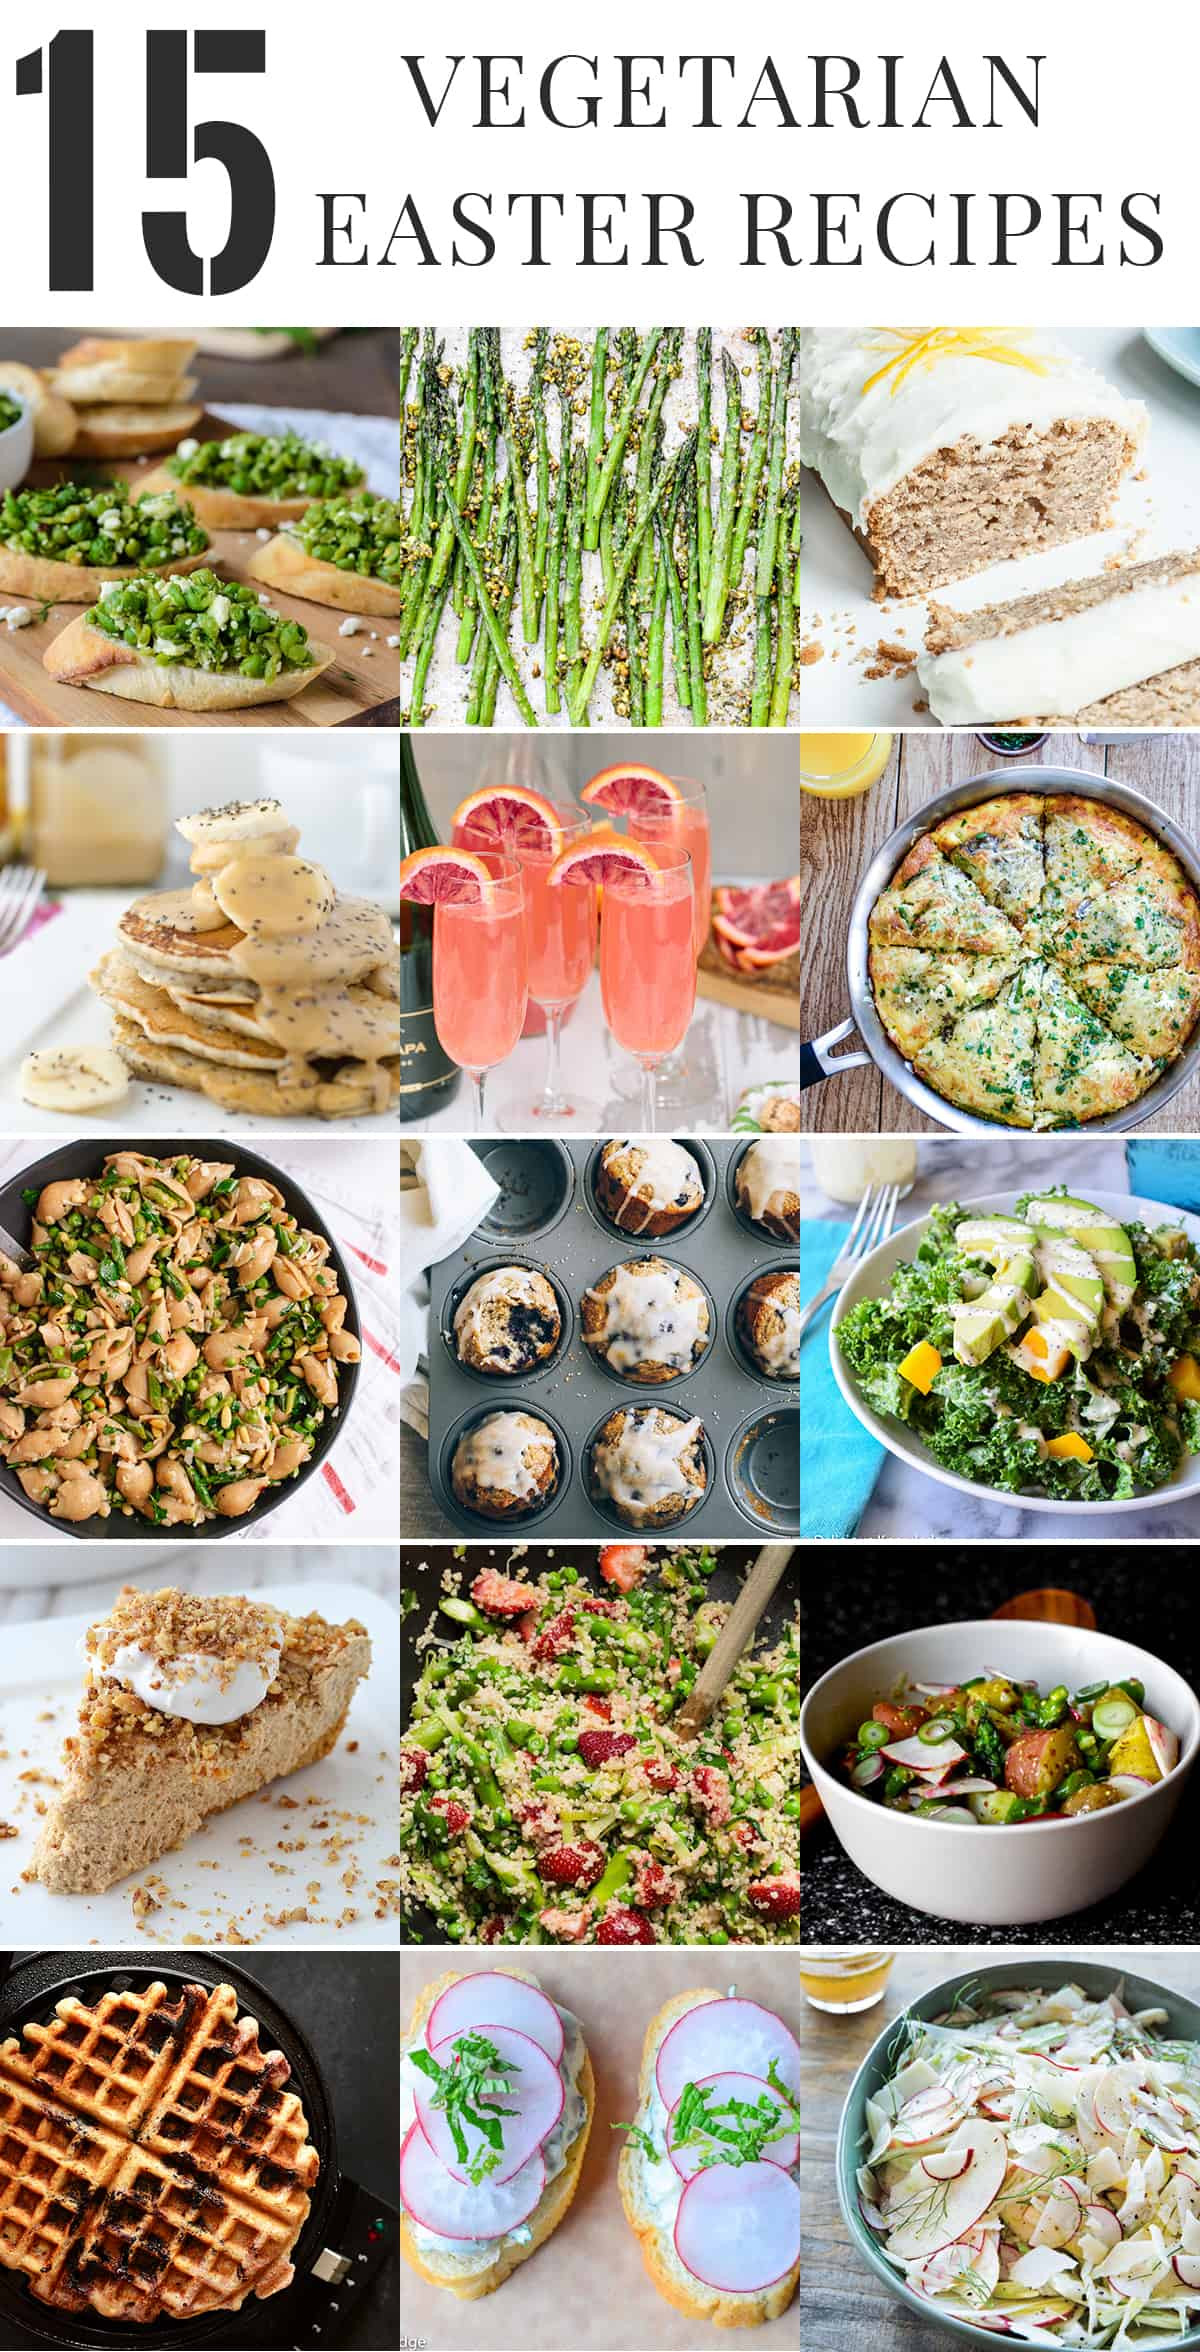 Vegetarian Recipes For Easter  Healthy Ve arian Easter Recipes Delish Knowledge